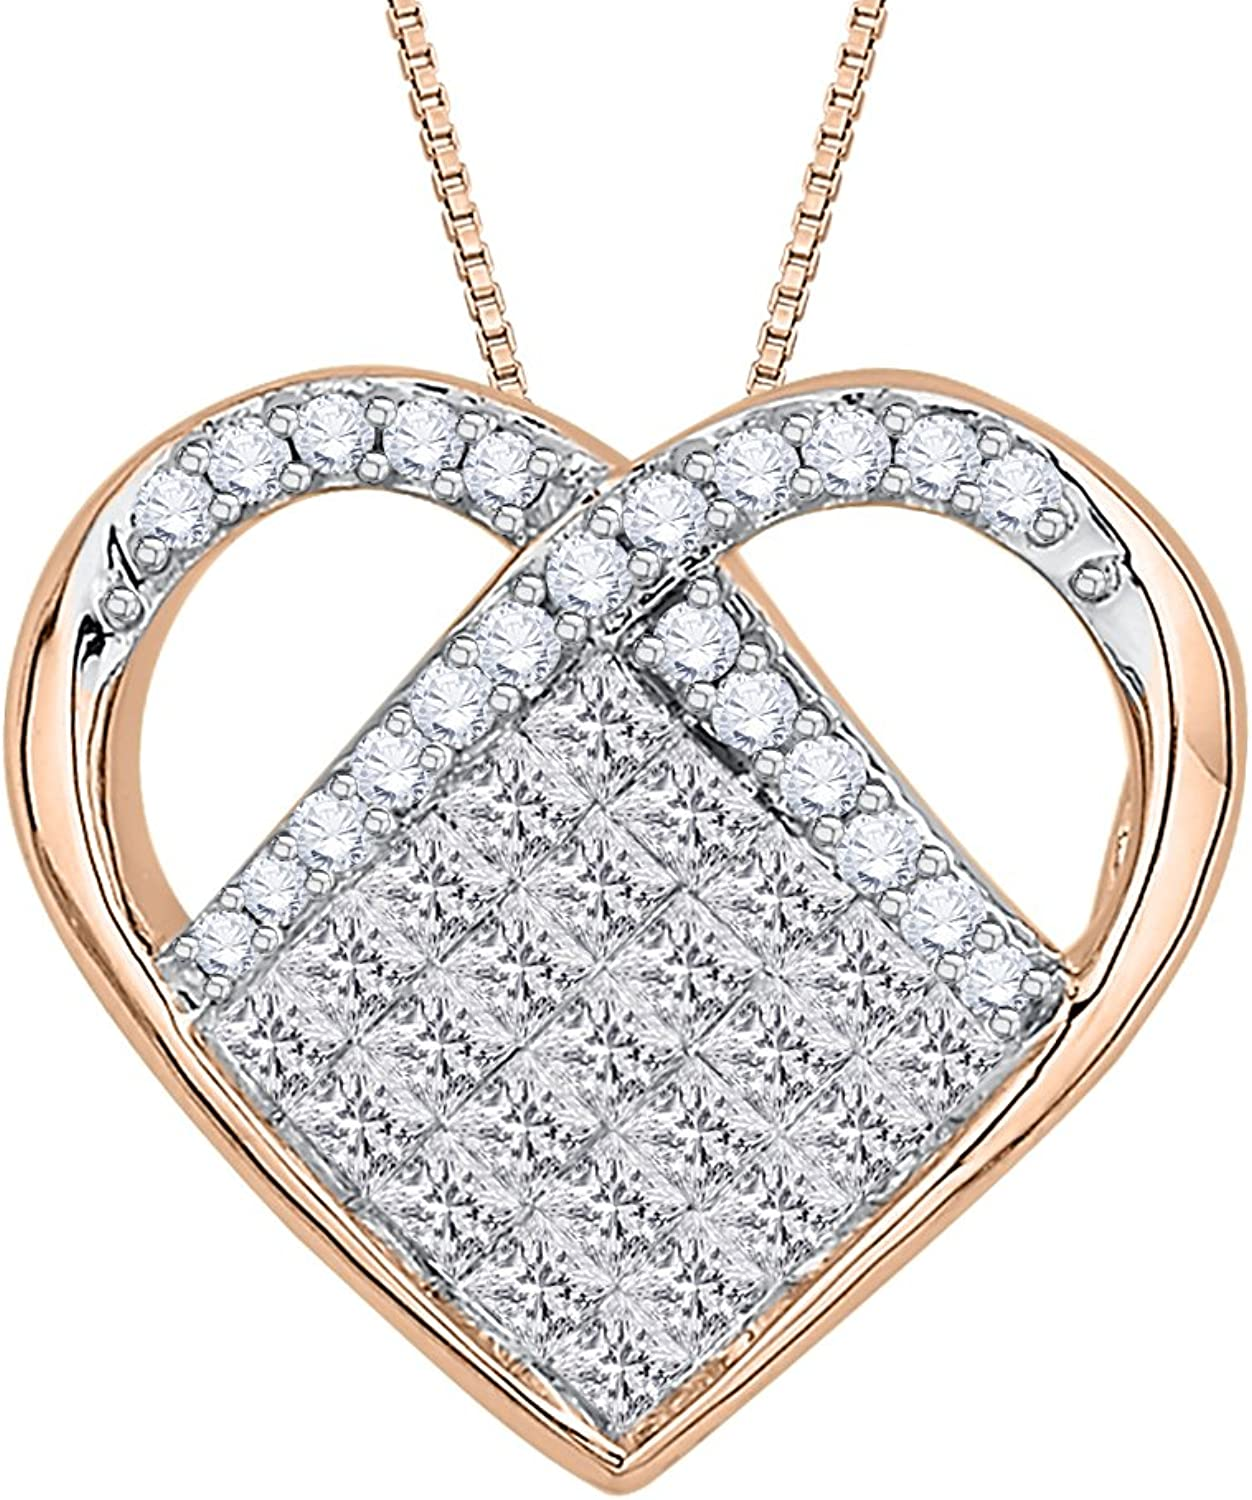 Princess and Round Cut Diamond Heart Pendant with Chain in gold (1 cttw)